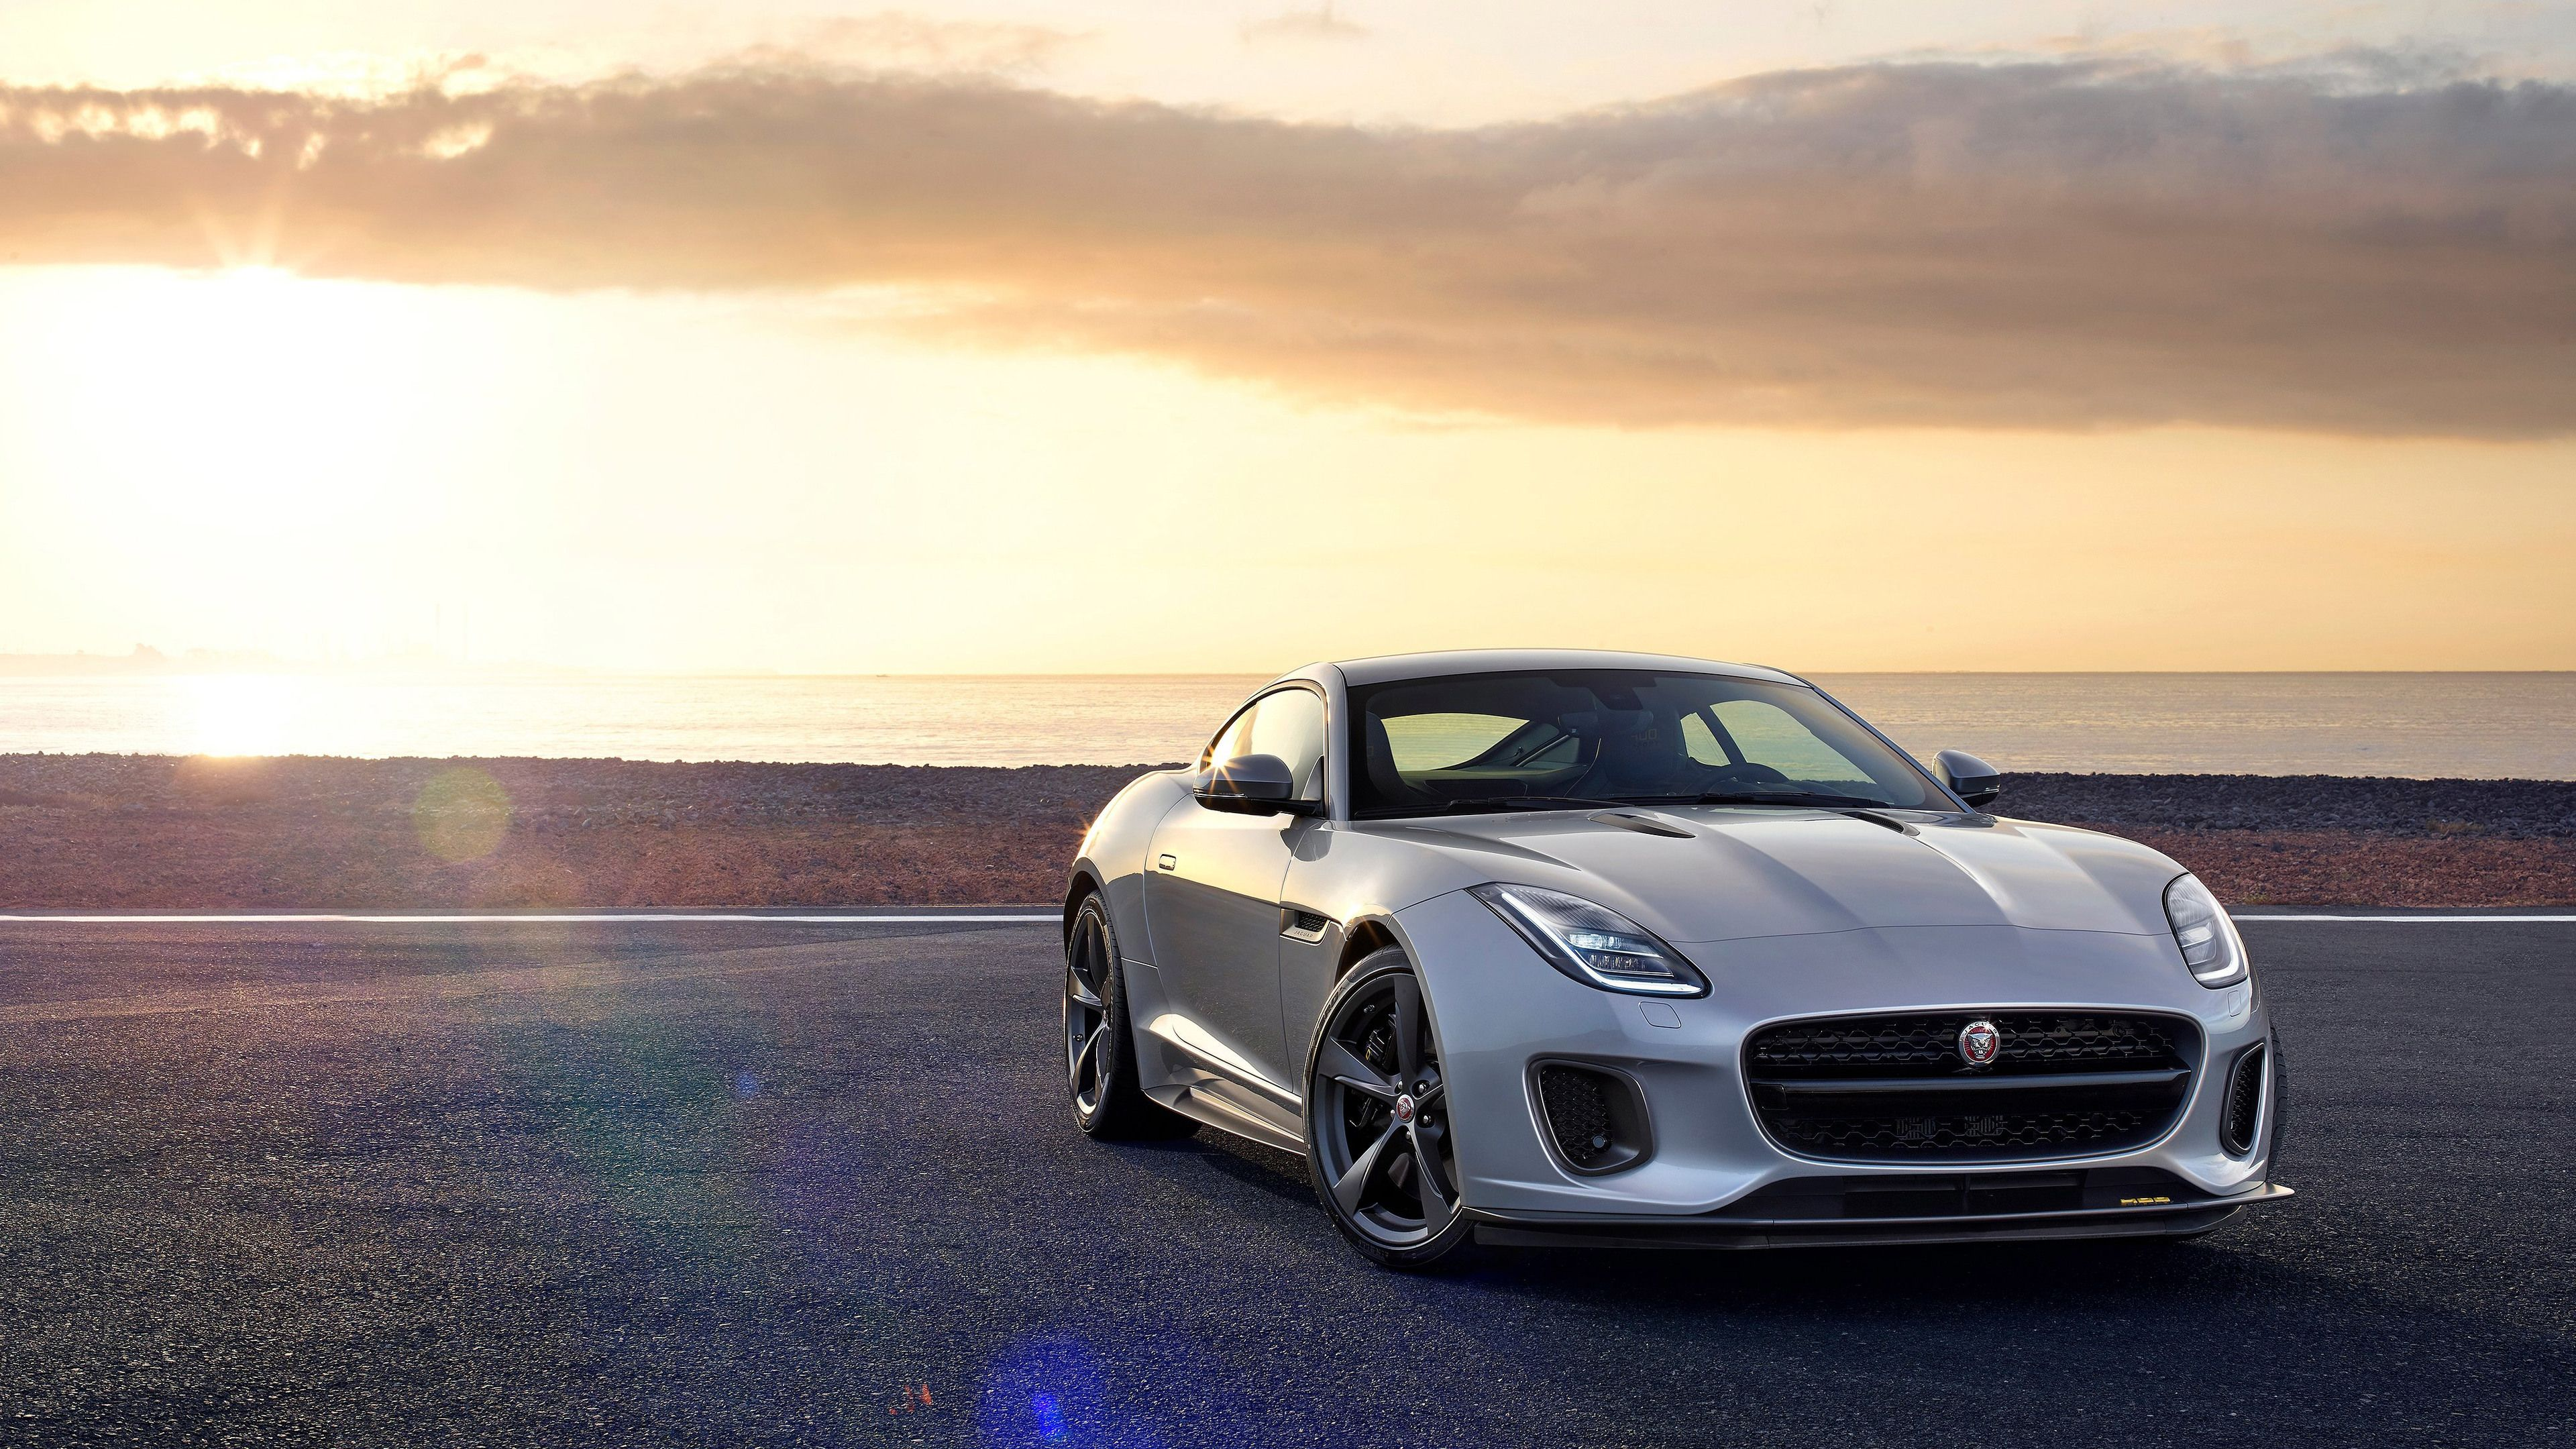 Jaguar F Type 2018 Jaguar Wallpapers Hd Wallpapers Cars Wallpapers